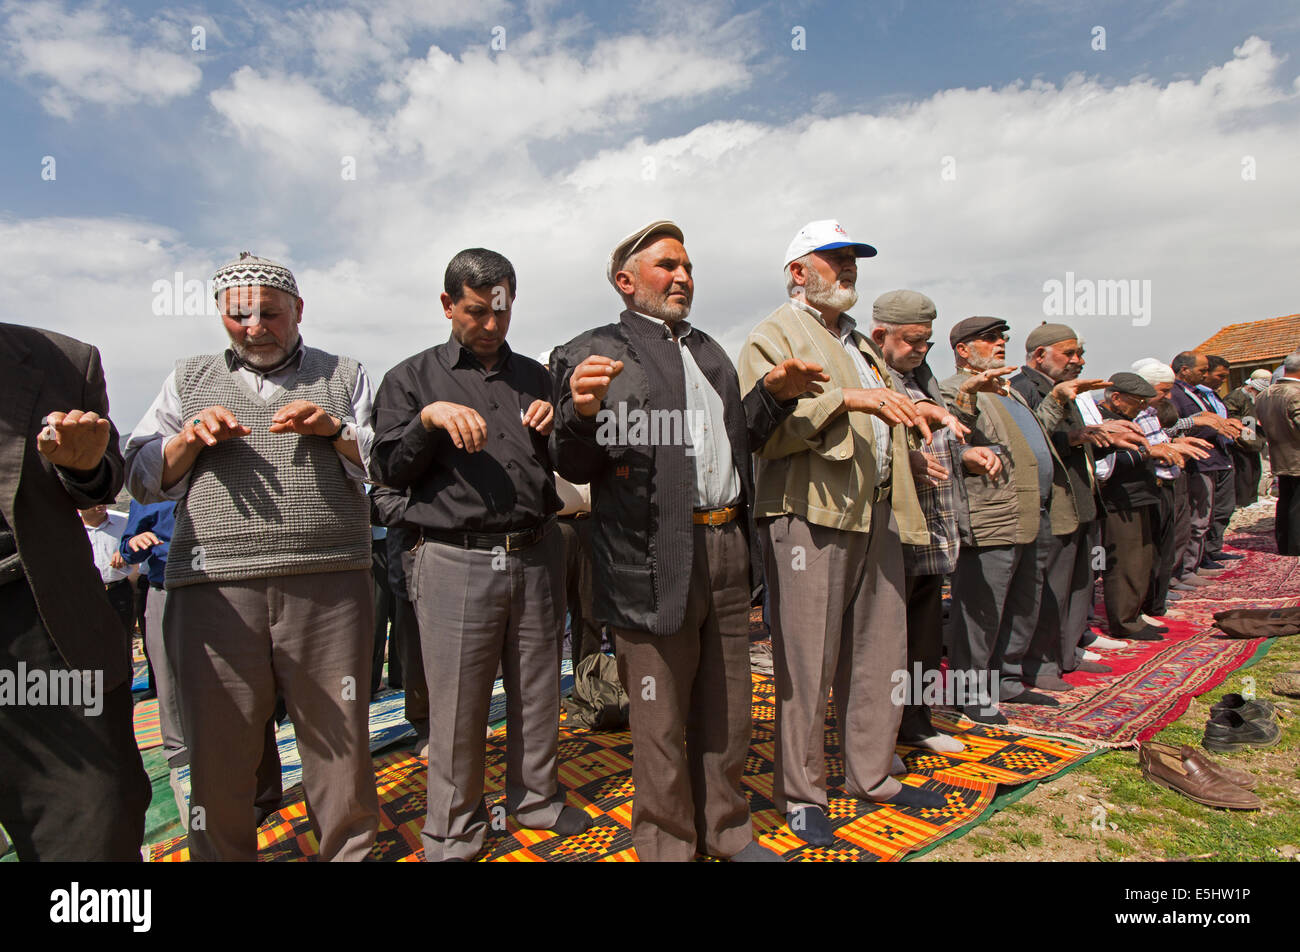 Rain praying in Kula Manisa Turkey - Stock Image